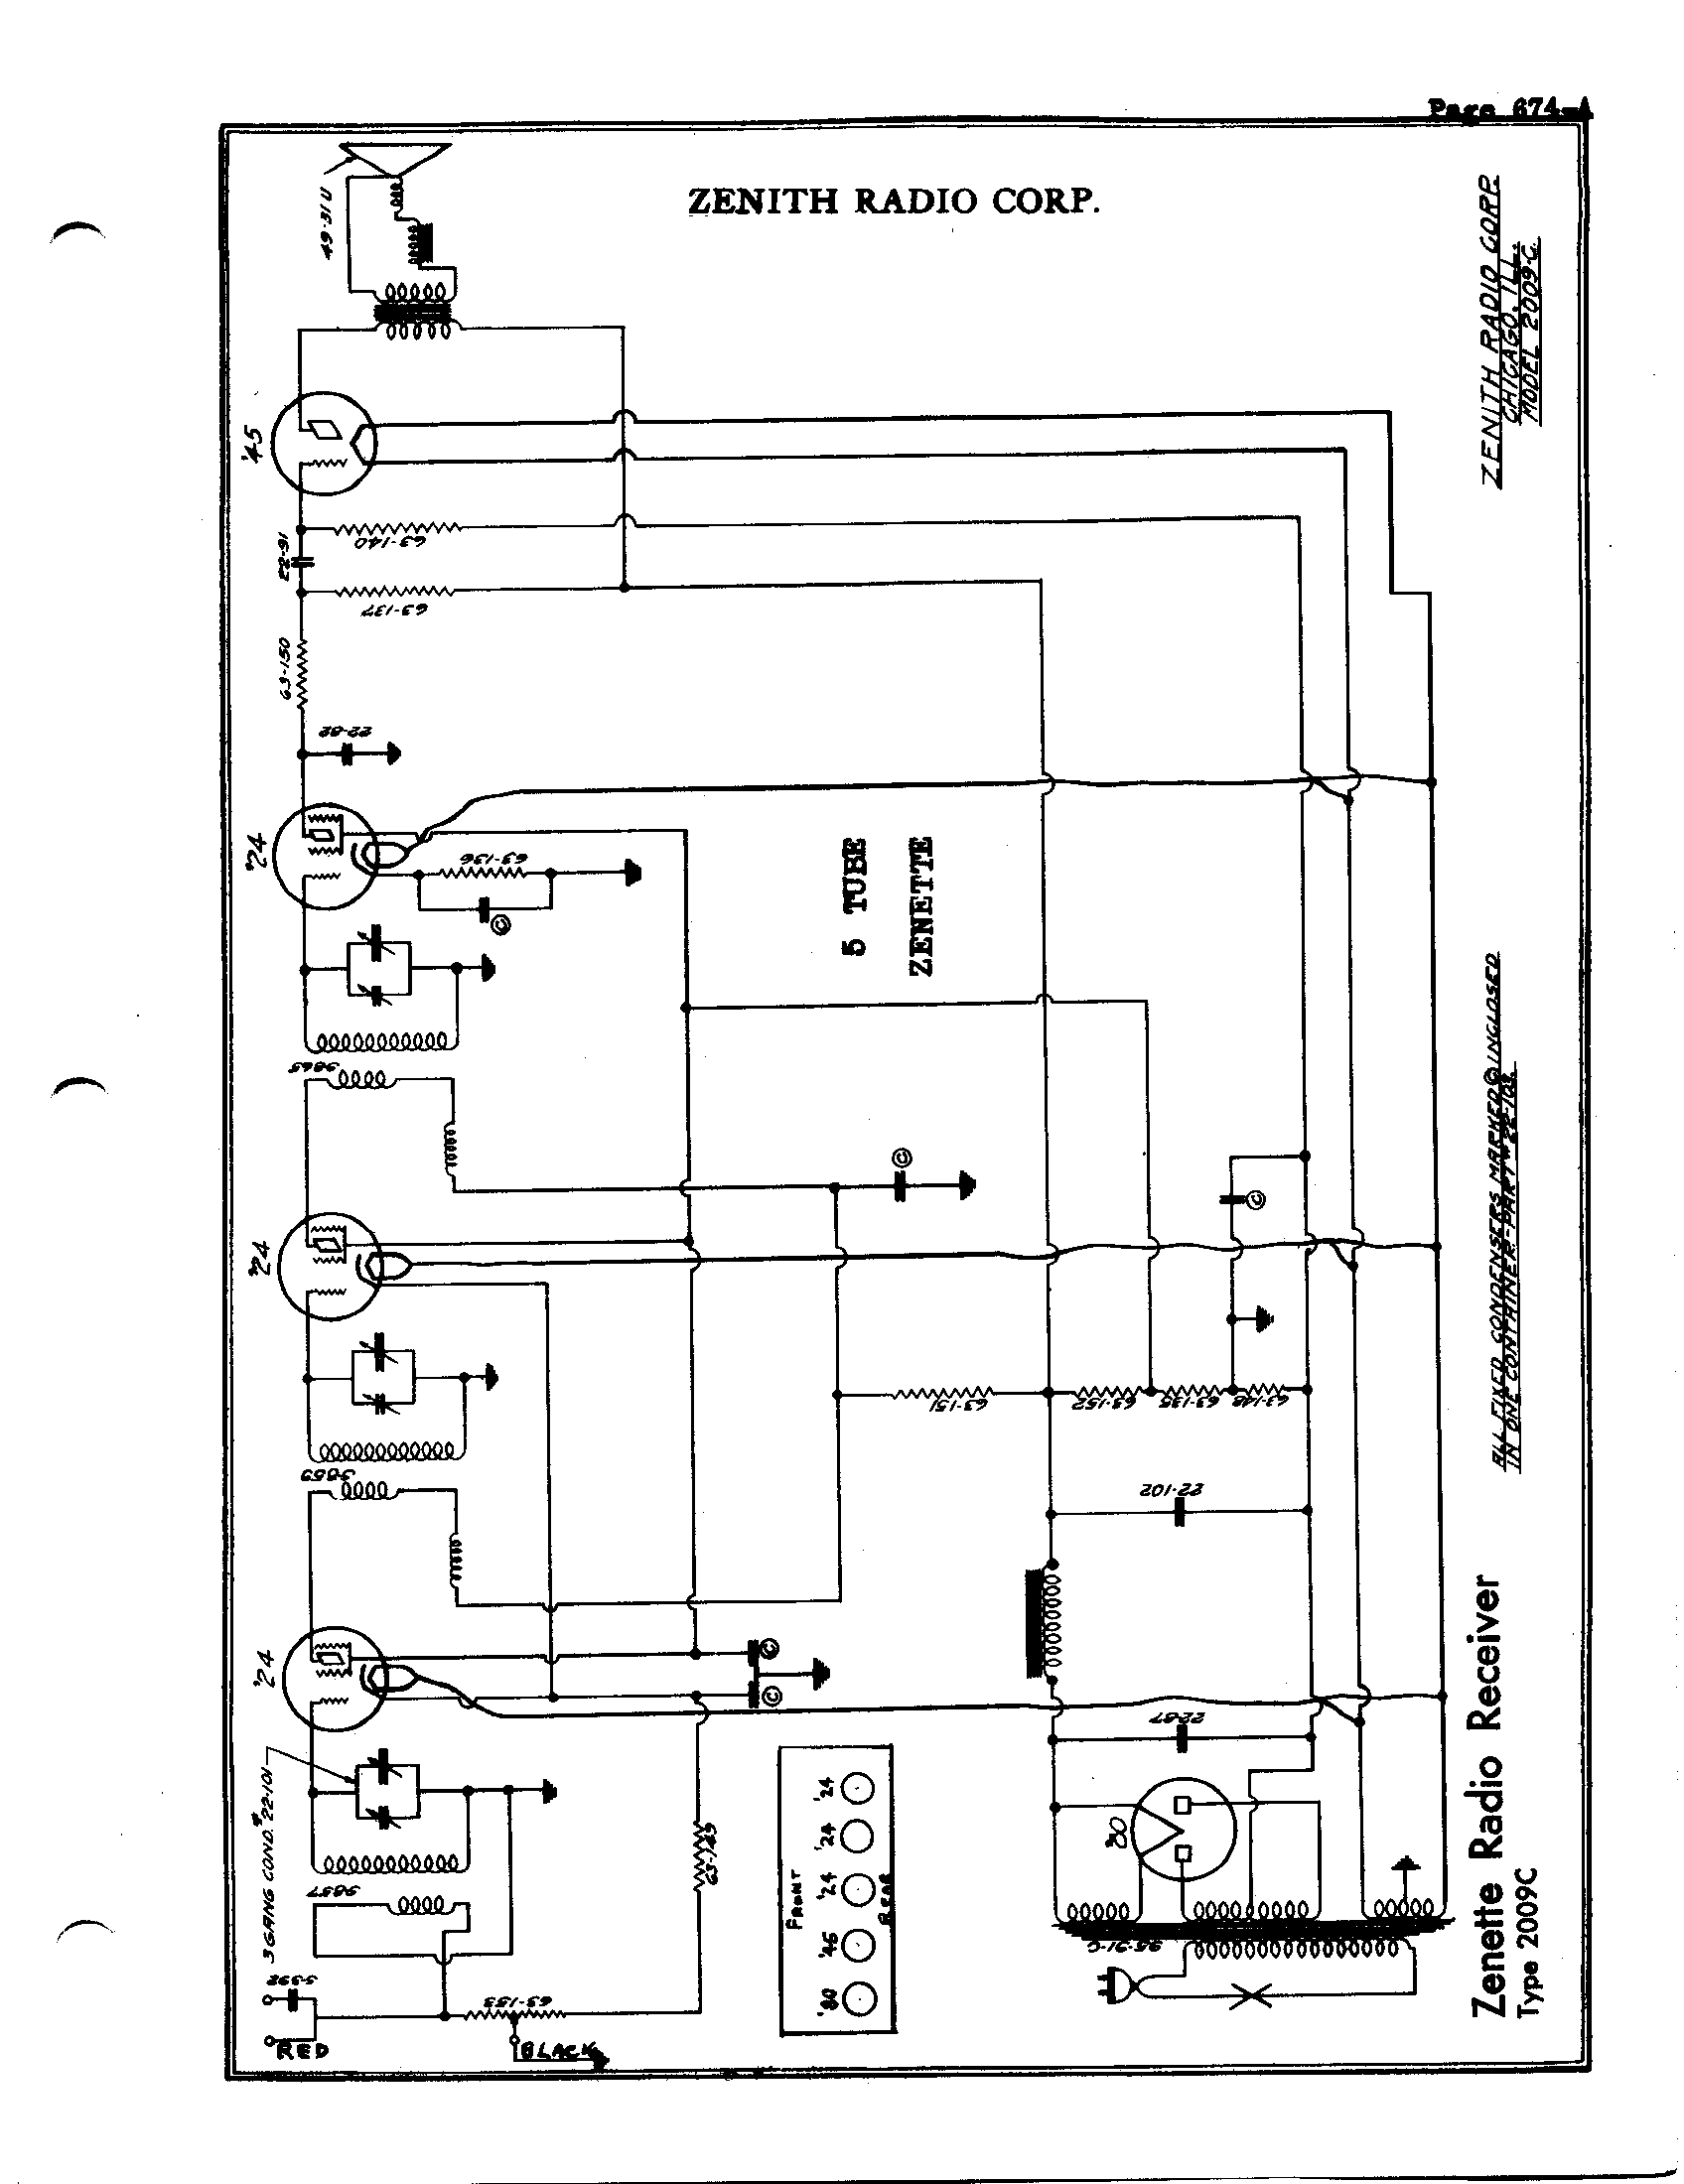 Zenith Clock Radio Schematics